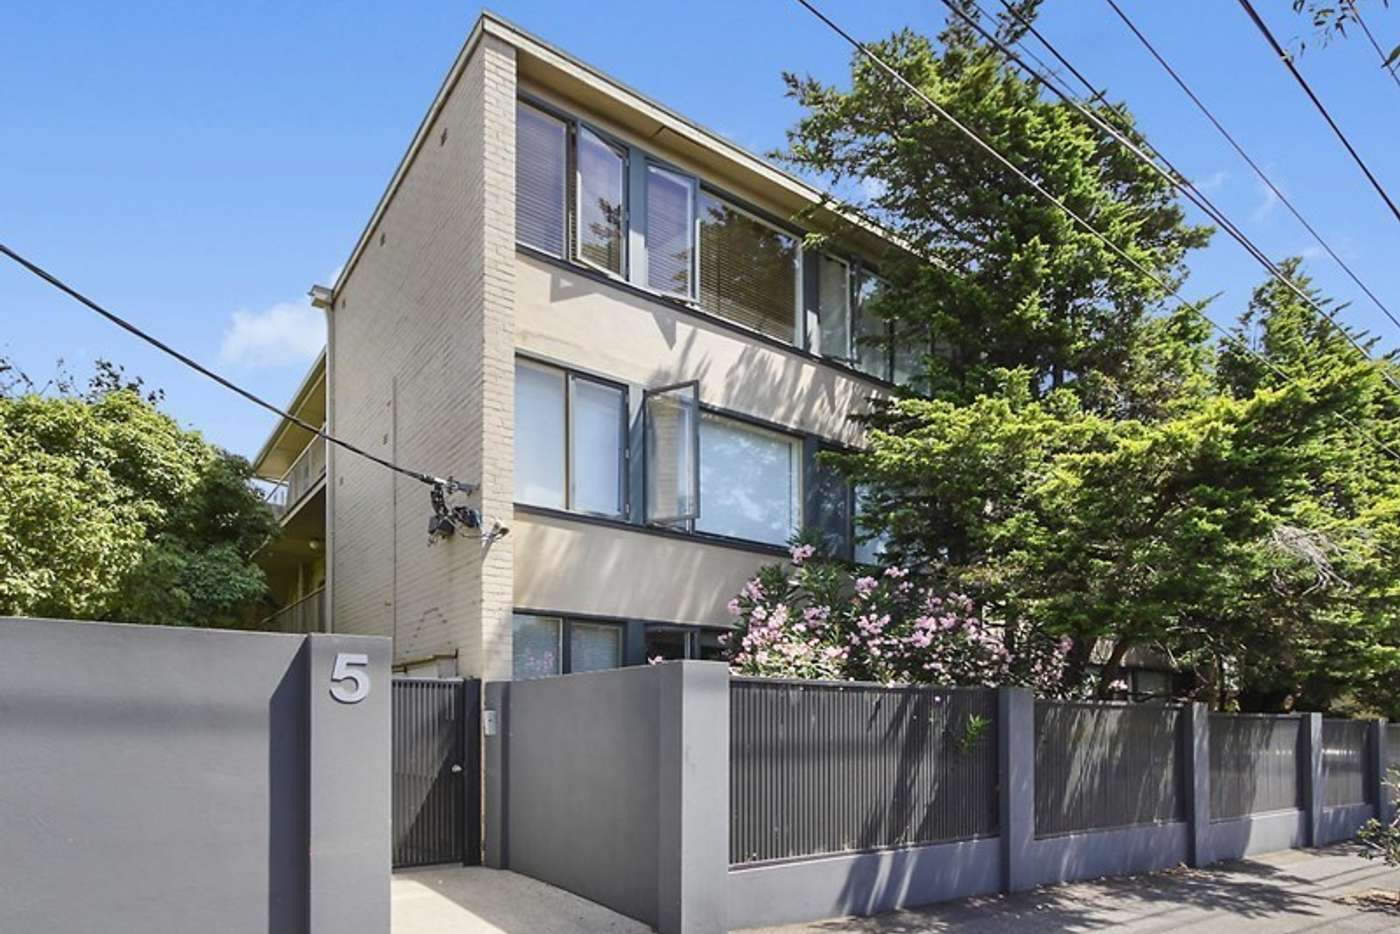 Main view of Homely apartment listing, 40/9 Fulton Street, St Kilda East VIC 3183